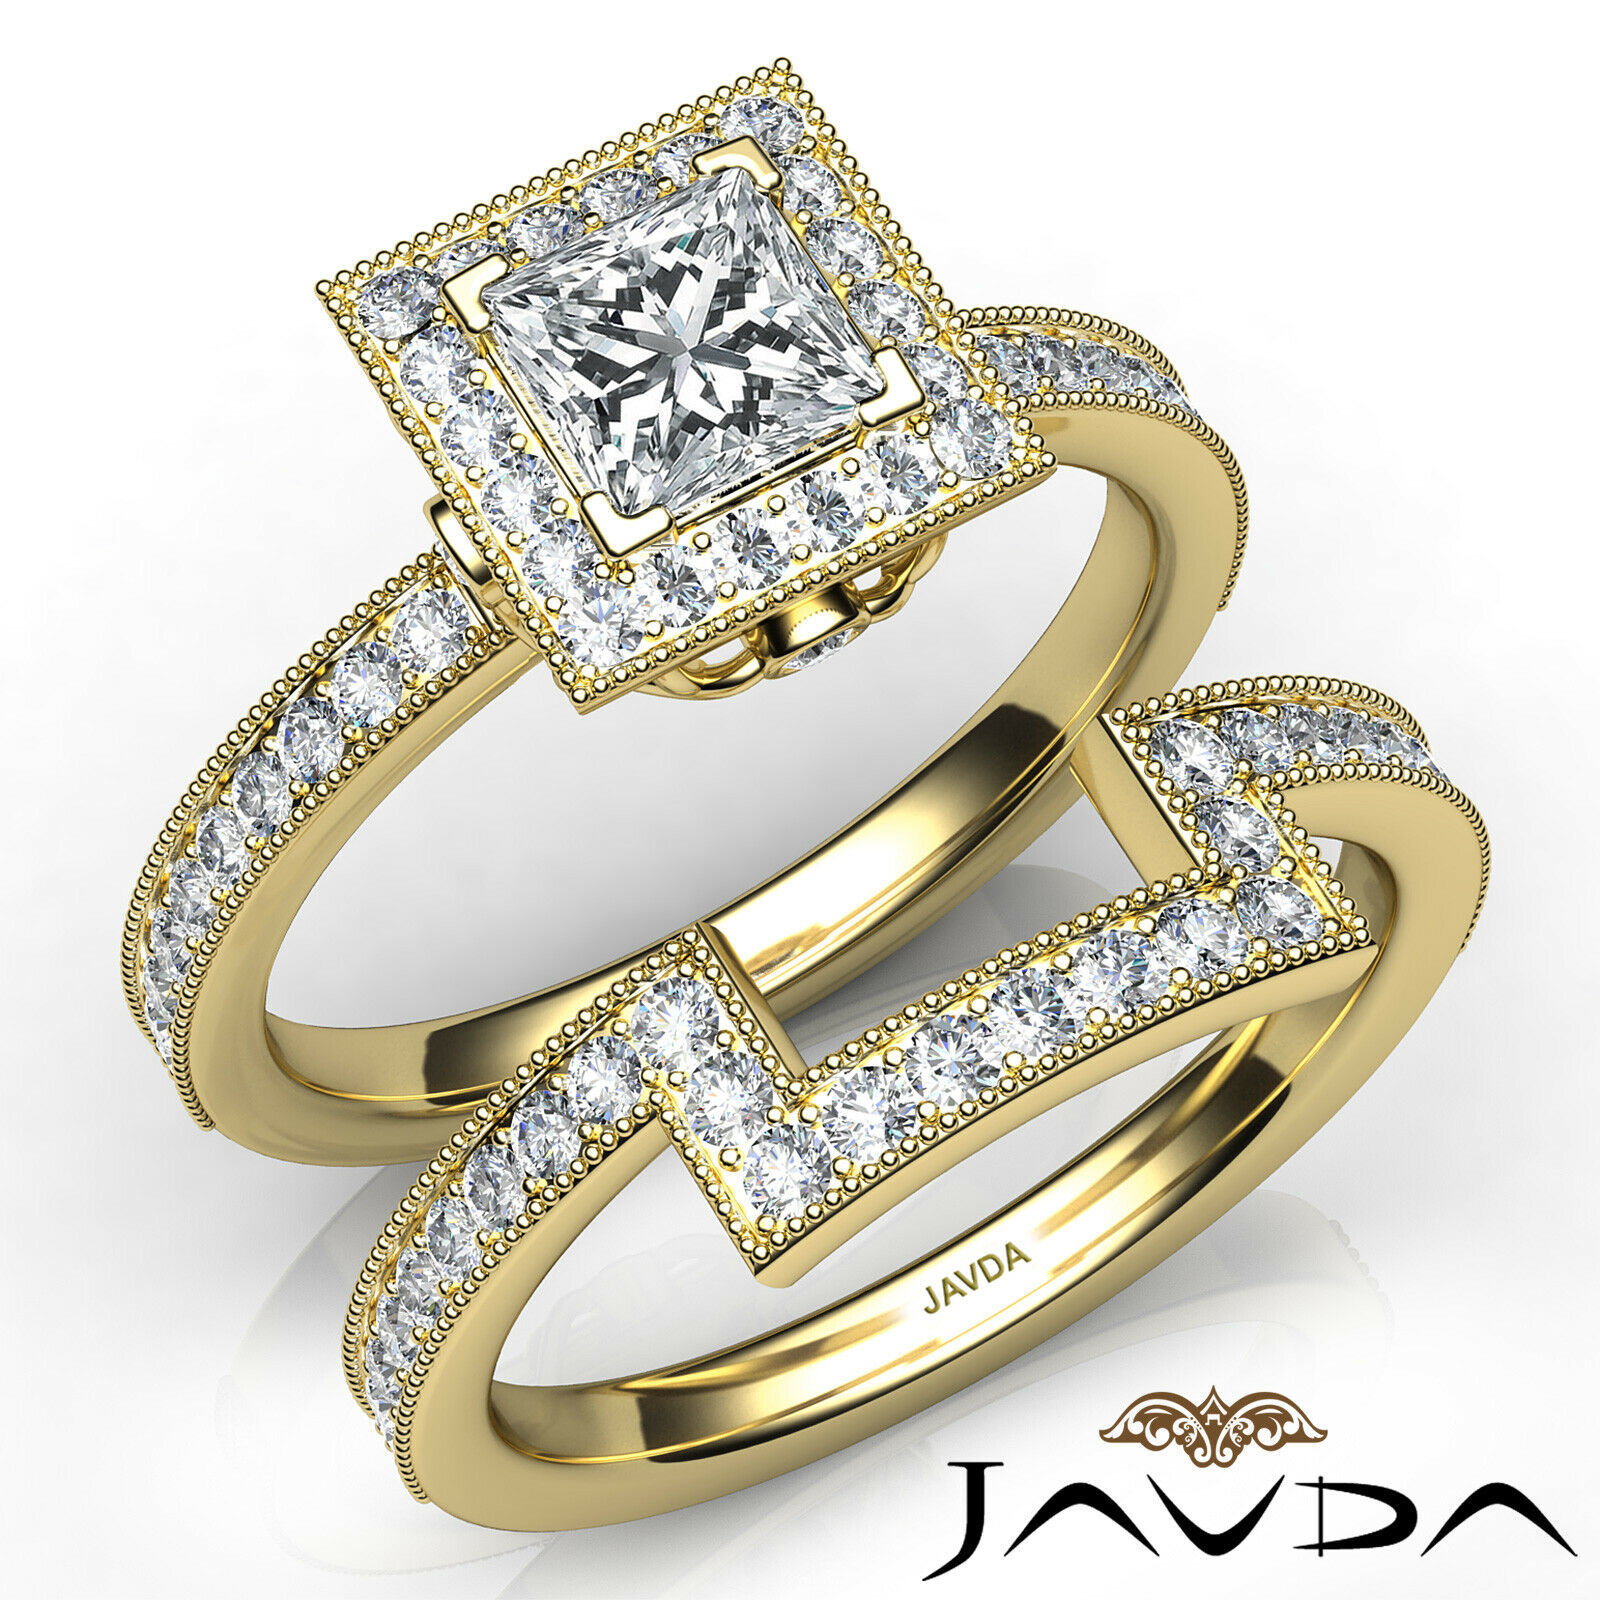 1.9ct Milgrain Edge Bridal Set Princess Diamond Engagement Ring GIA F-VS2 W Gold 8